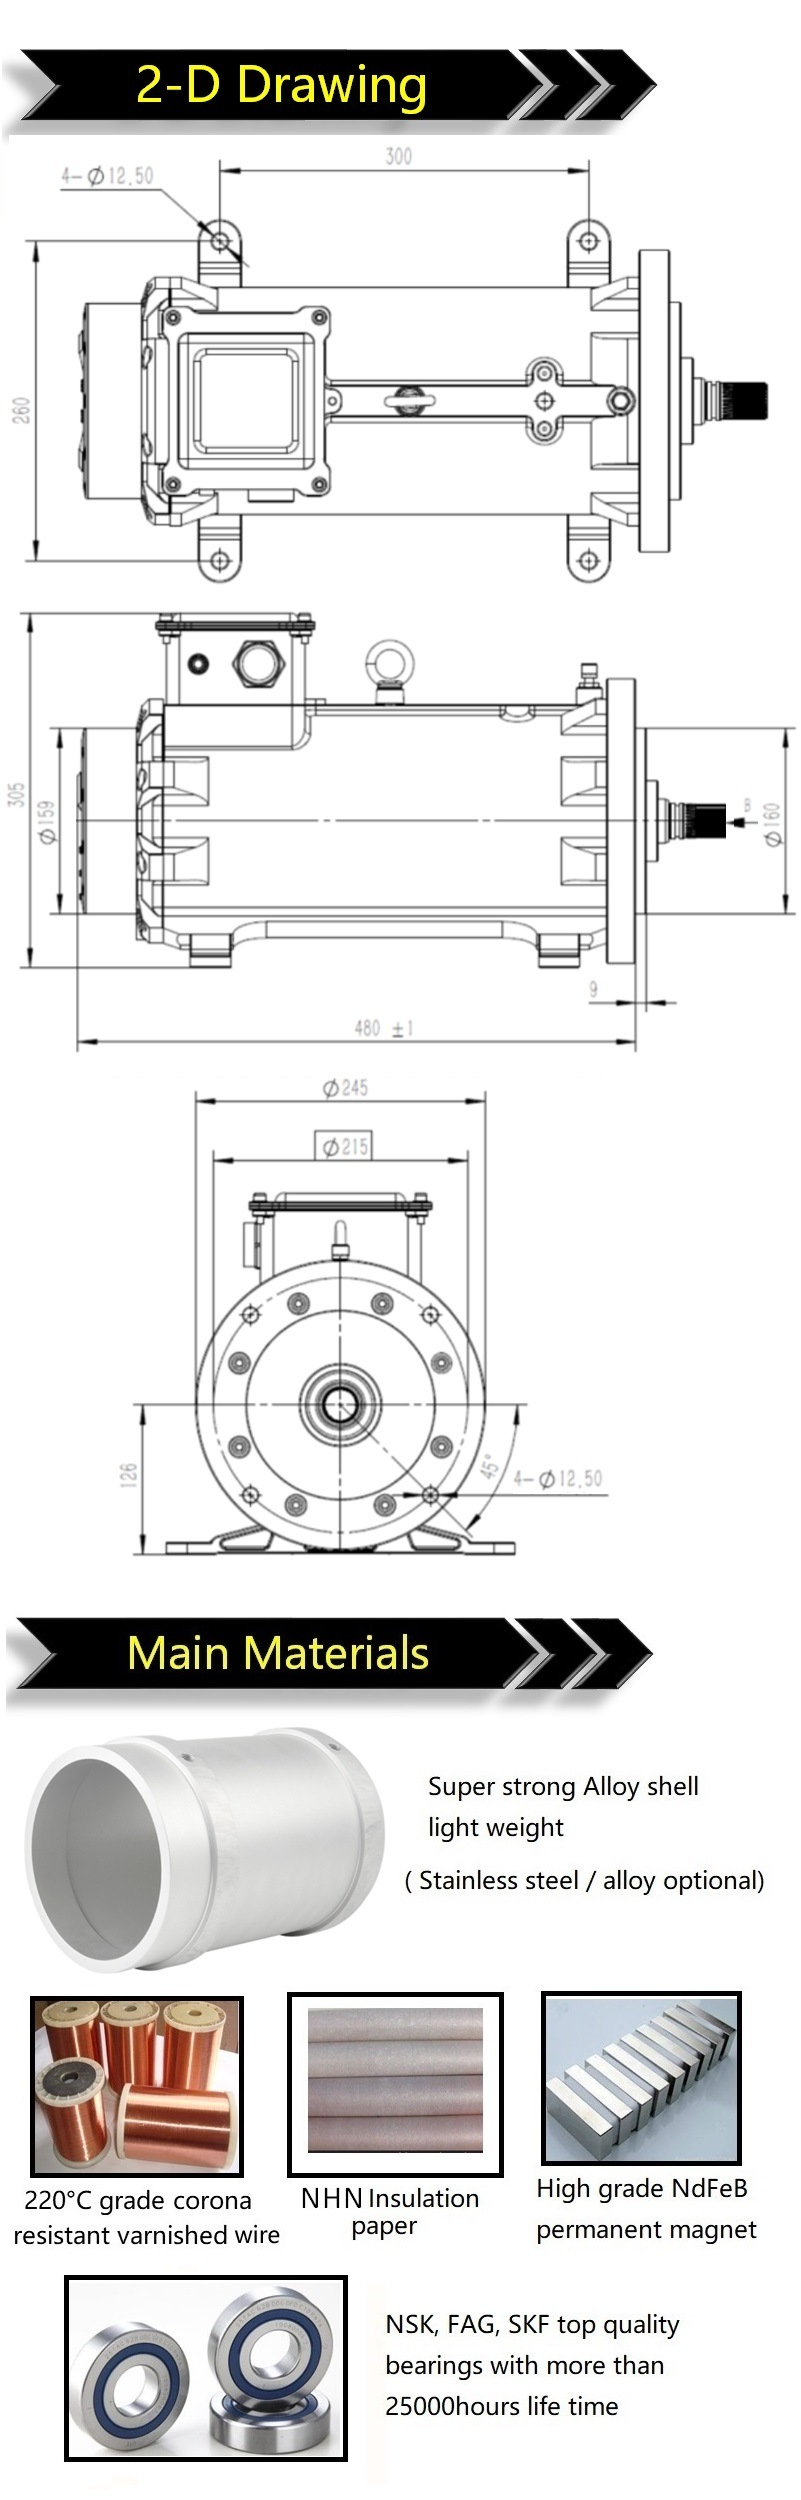 medium resolution of about mc motor mc motor technology co ltd is a leading high tech enterprises which focuses on the design research and manufacture of the new generation